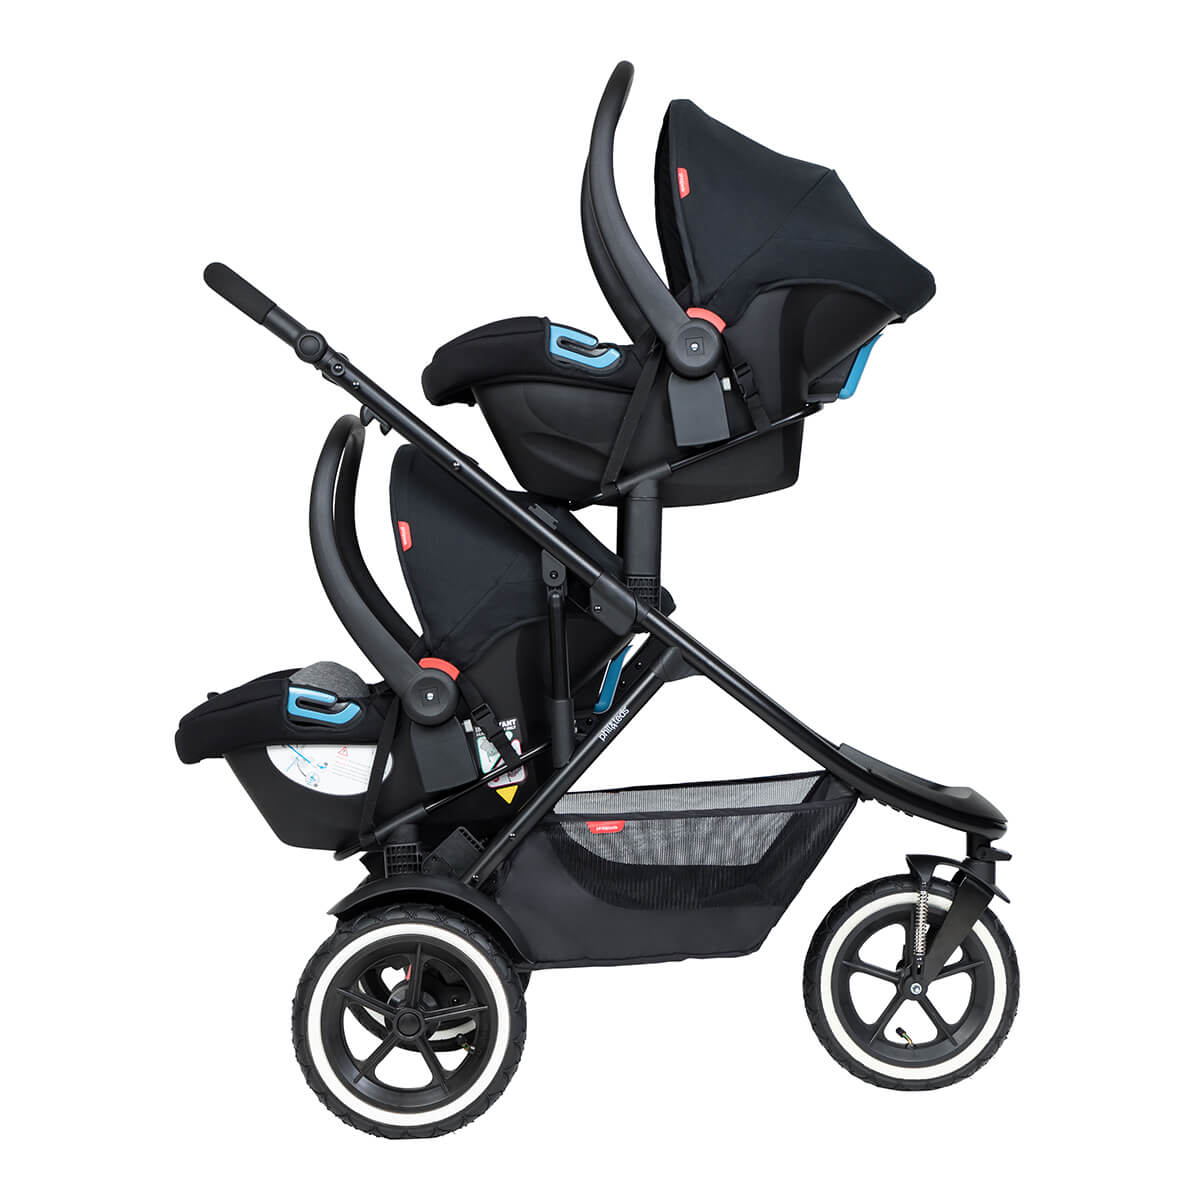 https://cdn.accentuate.io/4390323060832/19440099983544/philteds-sport-buggy-with-double-alpha-travel-system-v1626488624469.jpg?1200x1200